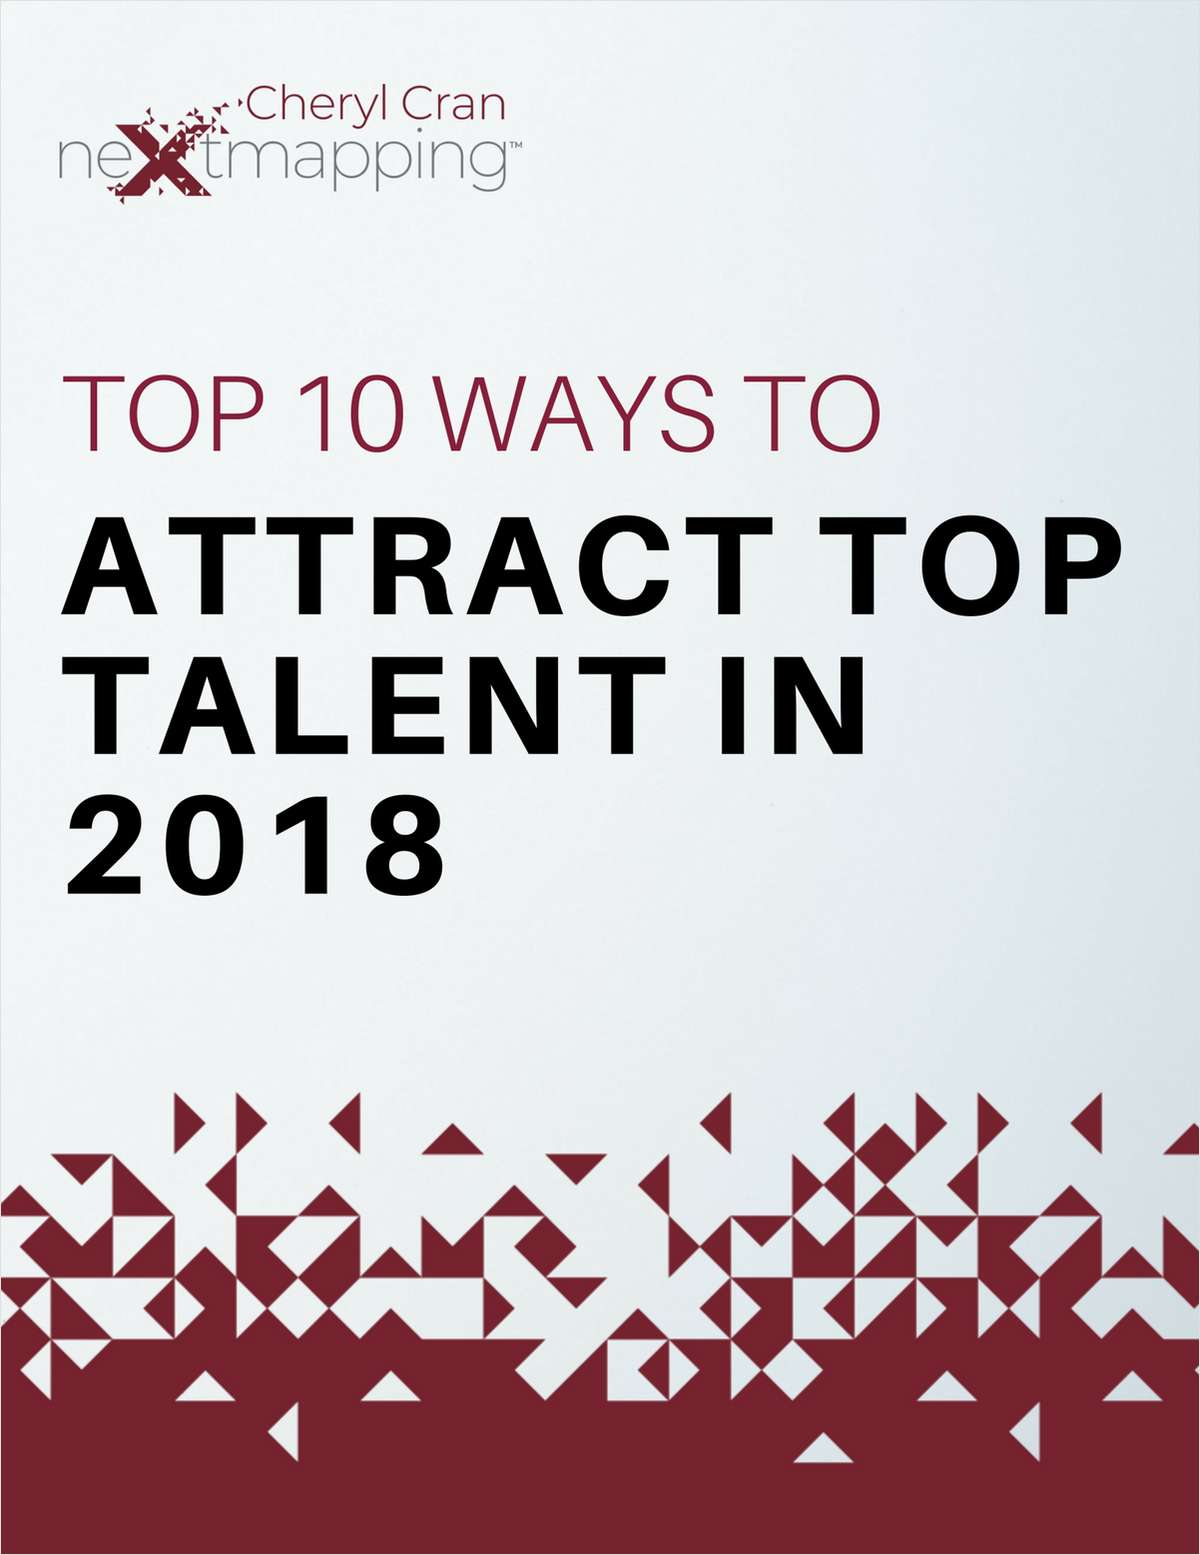 Top 10 Ways to Attract Top Talent in 2018